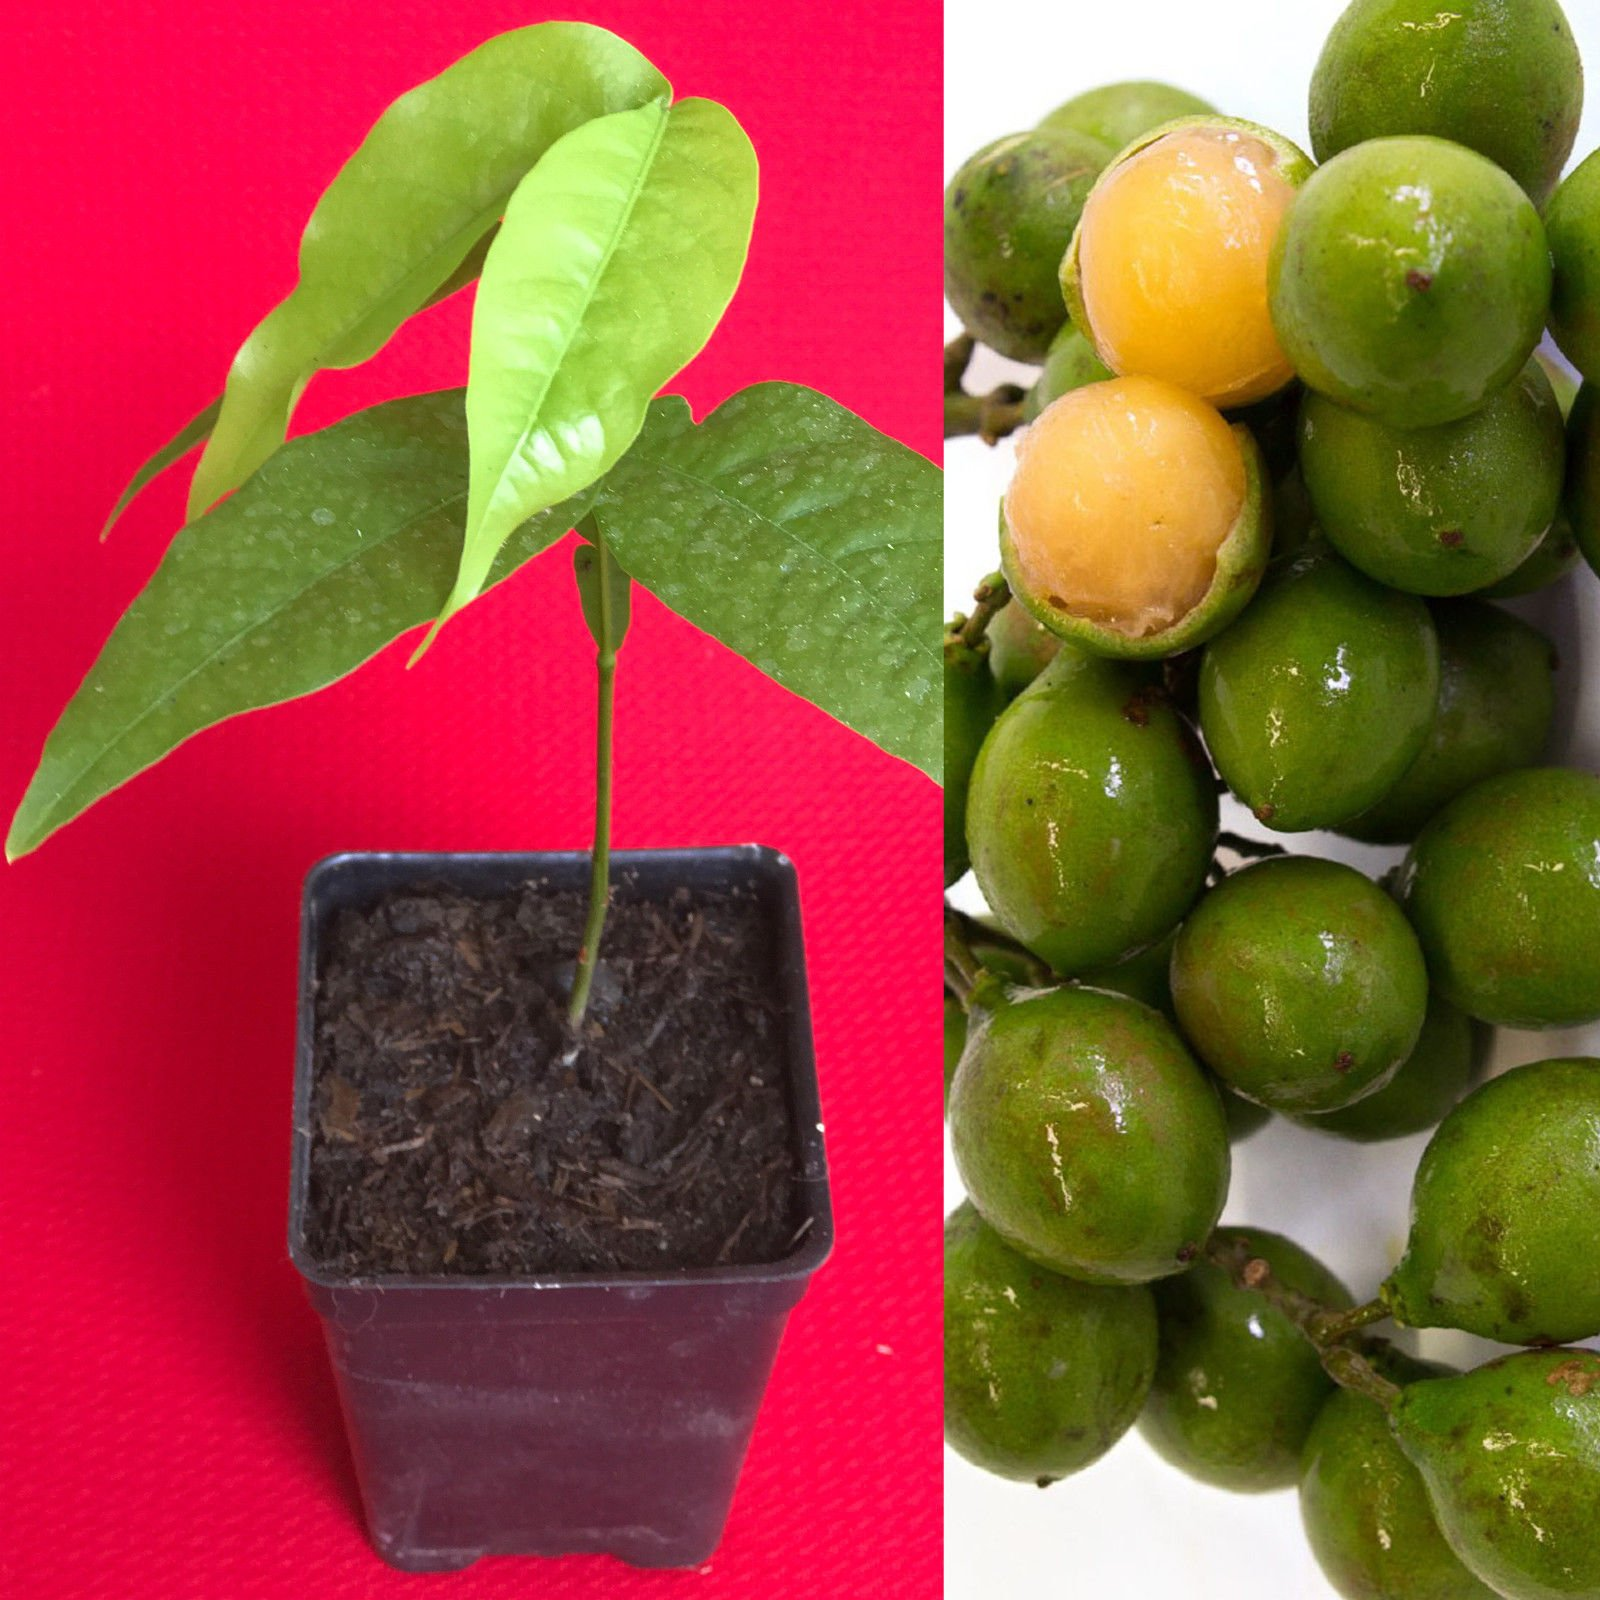 Spanish Lime Genip Guinep Ginepa Limoncillo Mamoncillo Fruit Seedling Starter Pl by genuineprotection (Image #1)